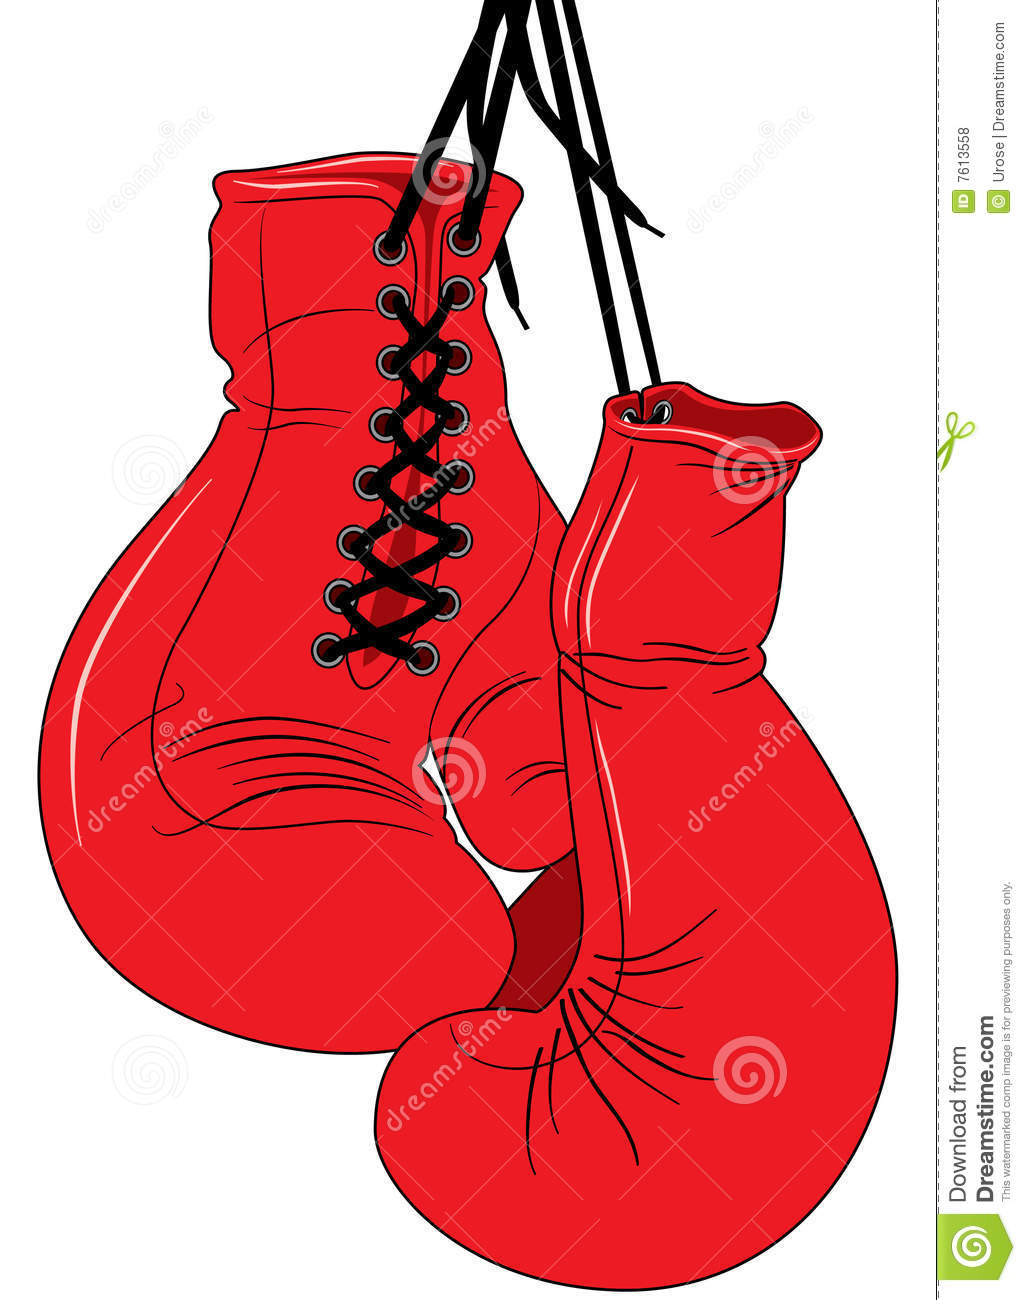 Boxing Gloves Royalty Free Stock Photos - Image: 7613558